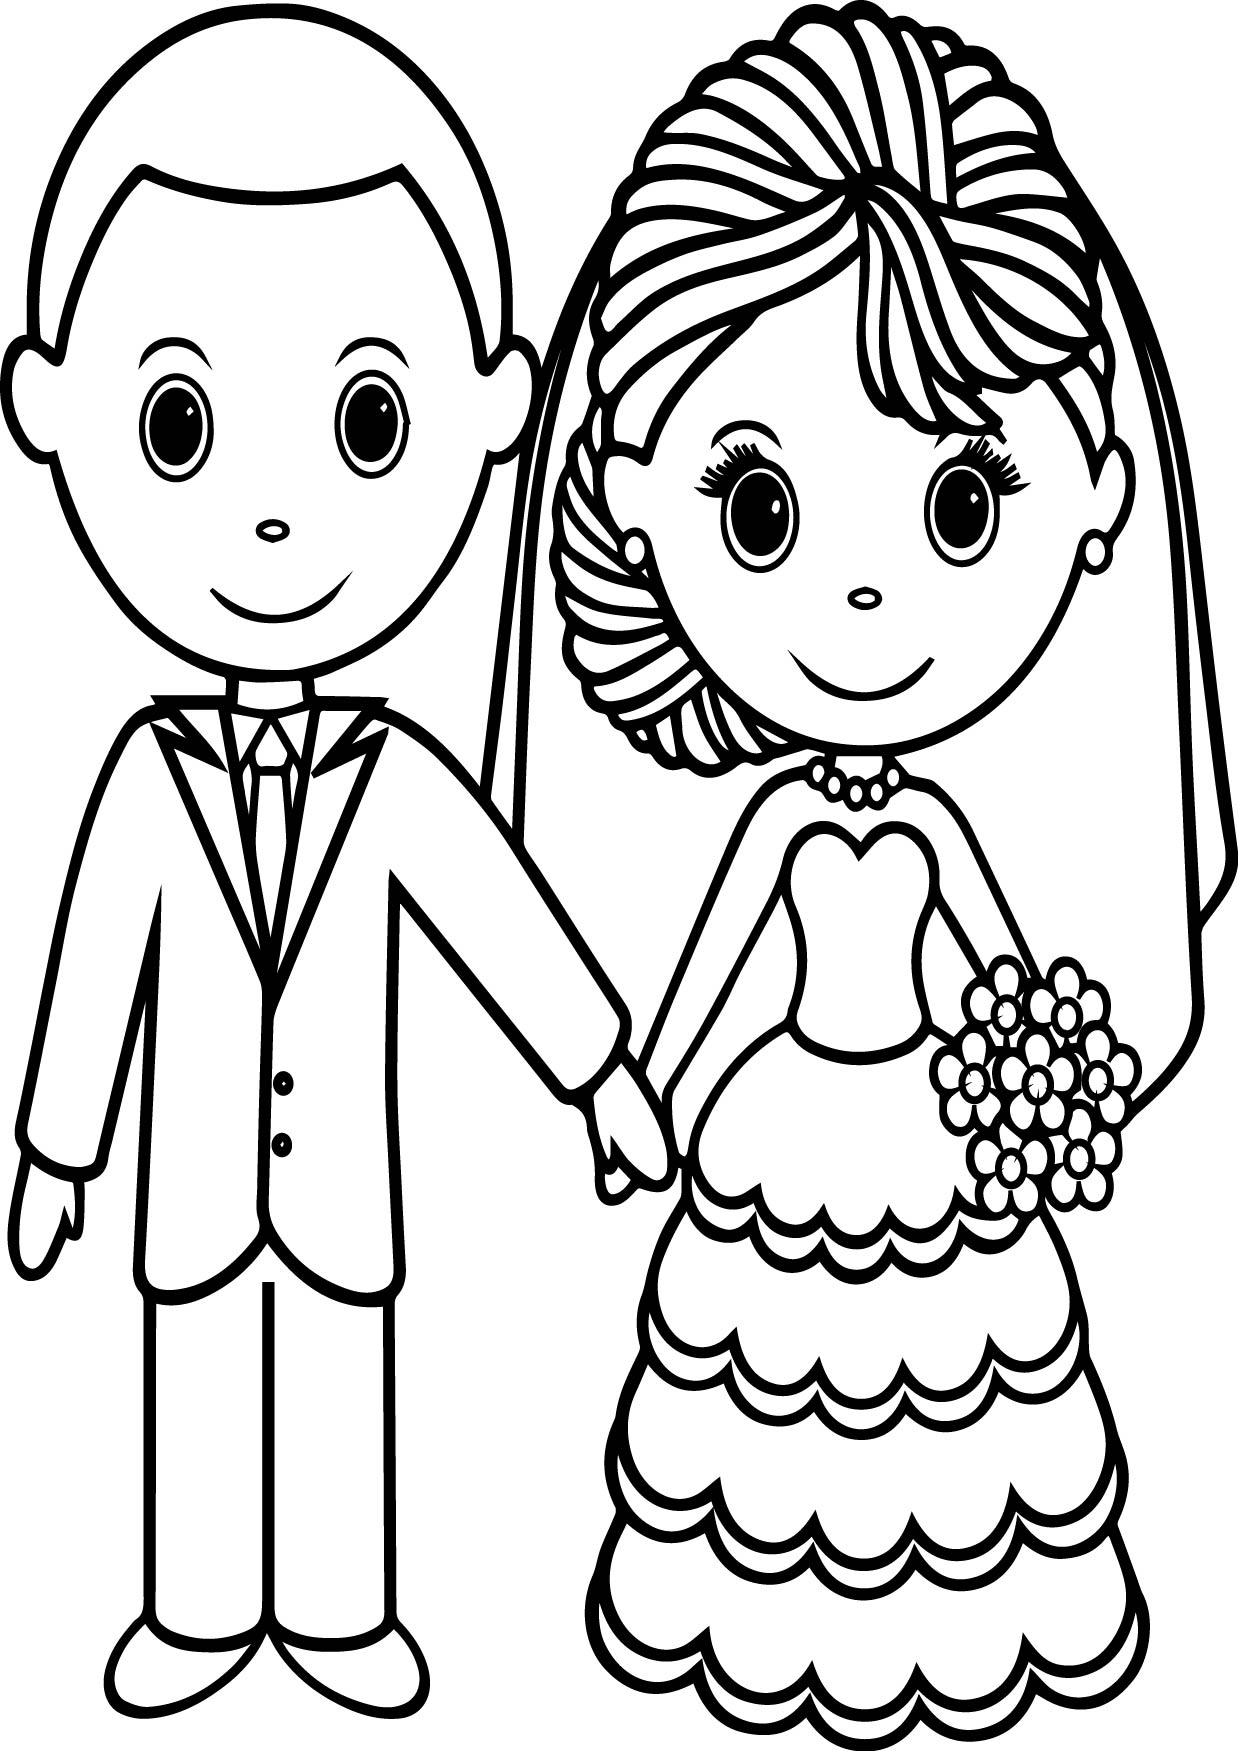 wedding coloring pages wedding coloring pages for download wedding coloring pages wedding coloring